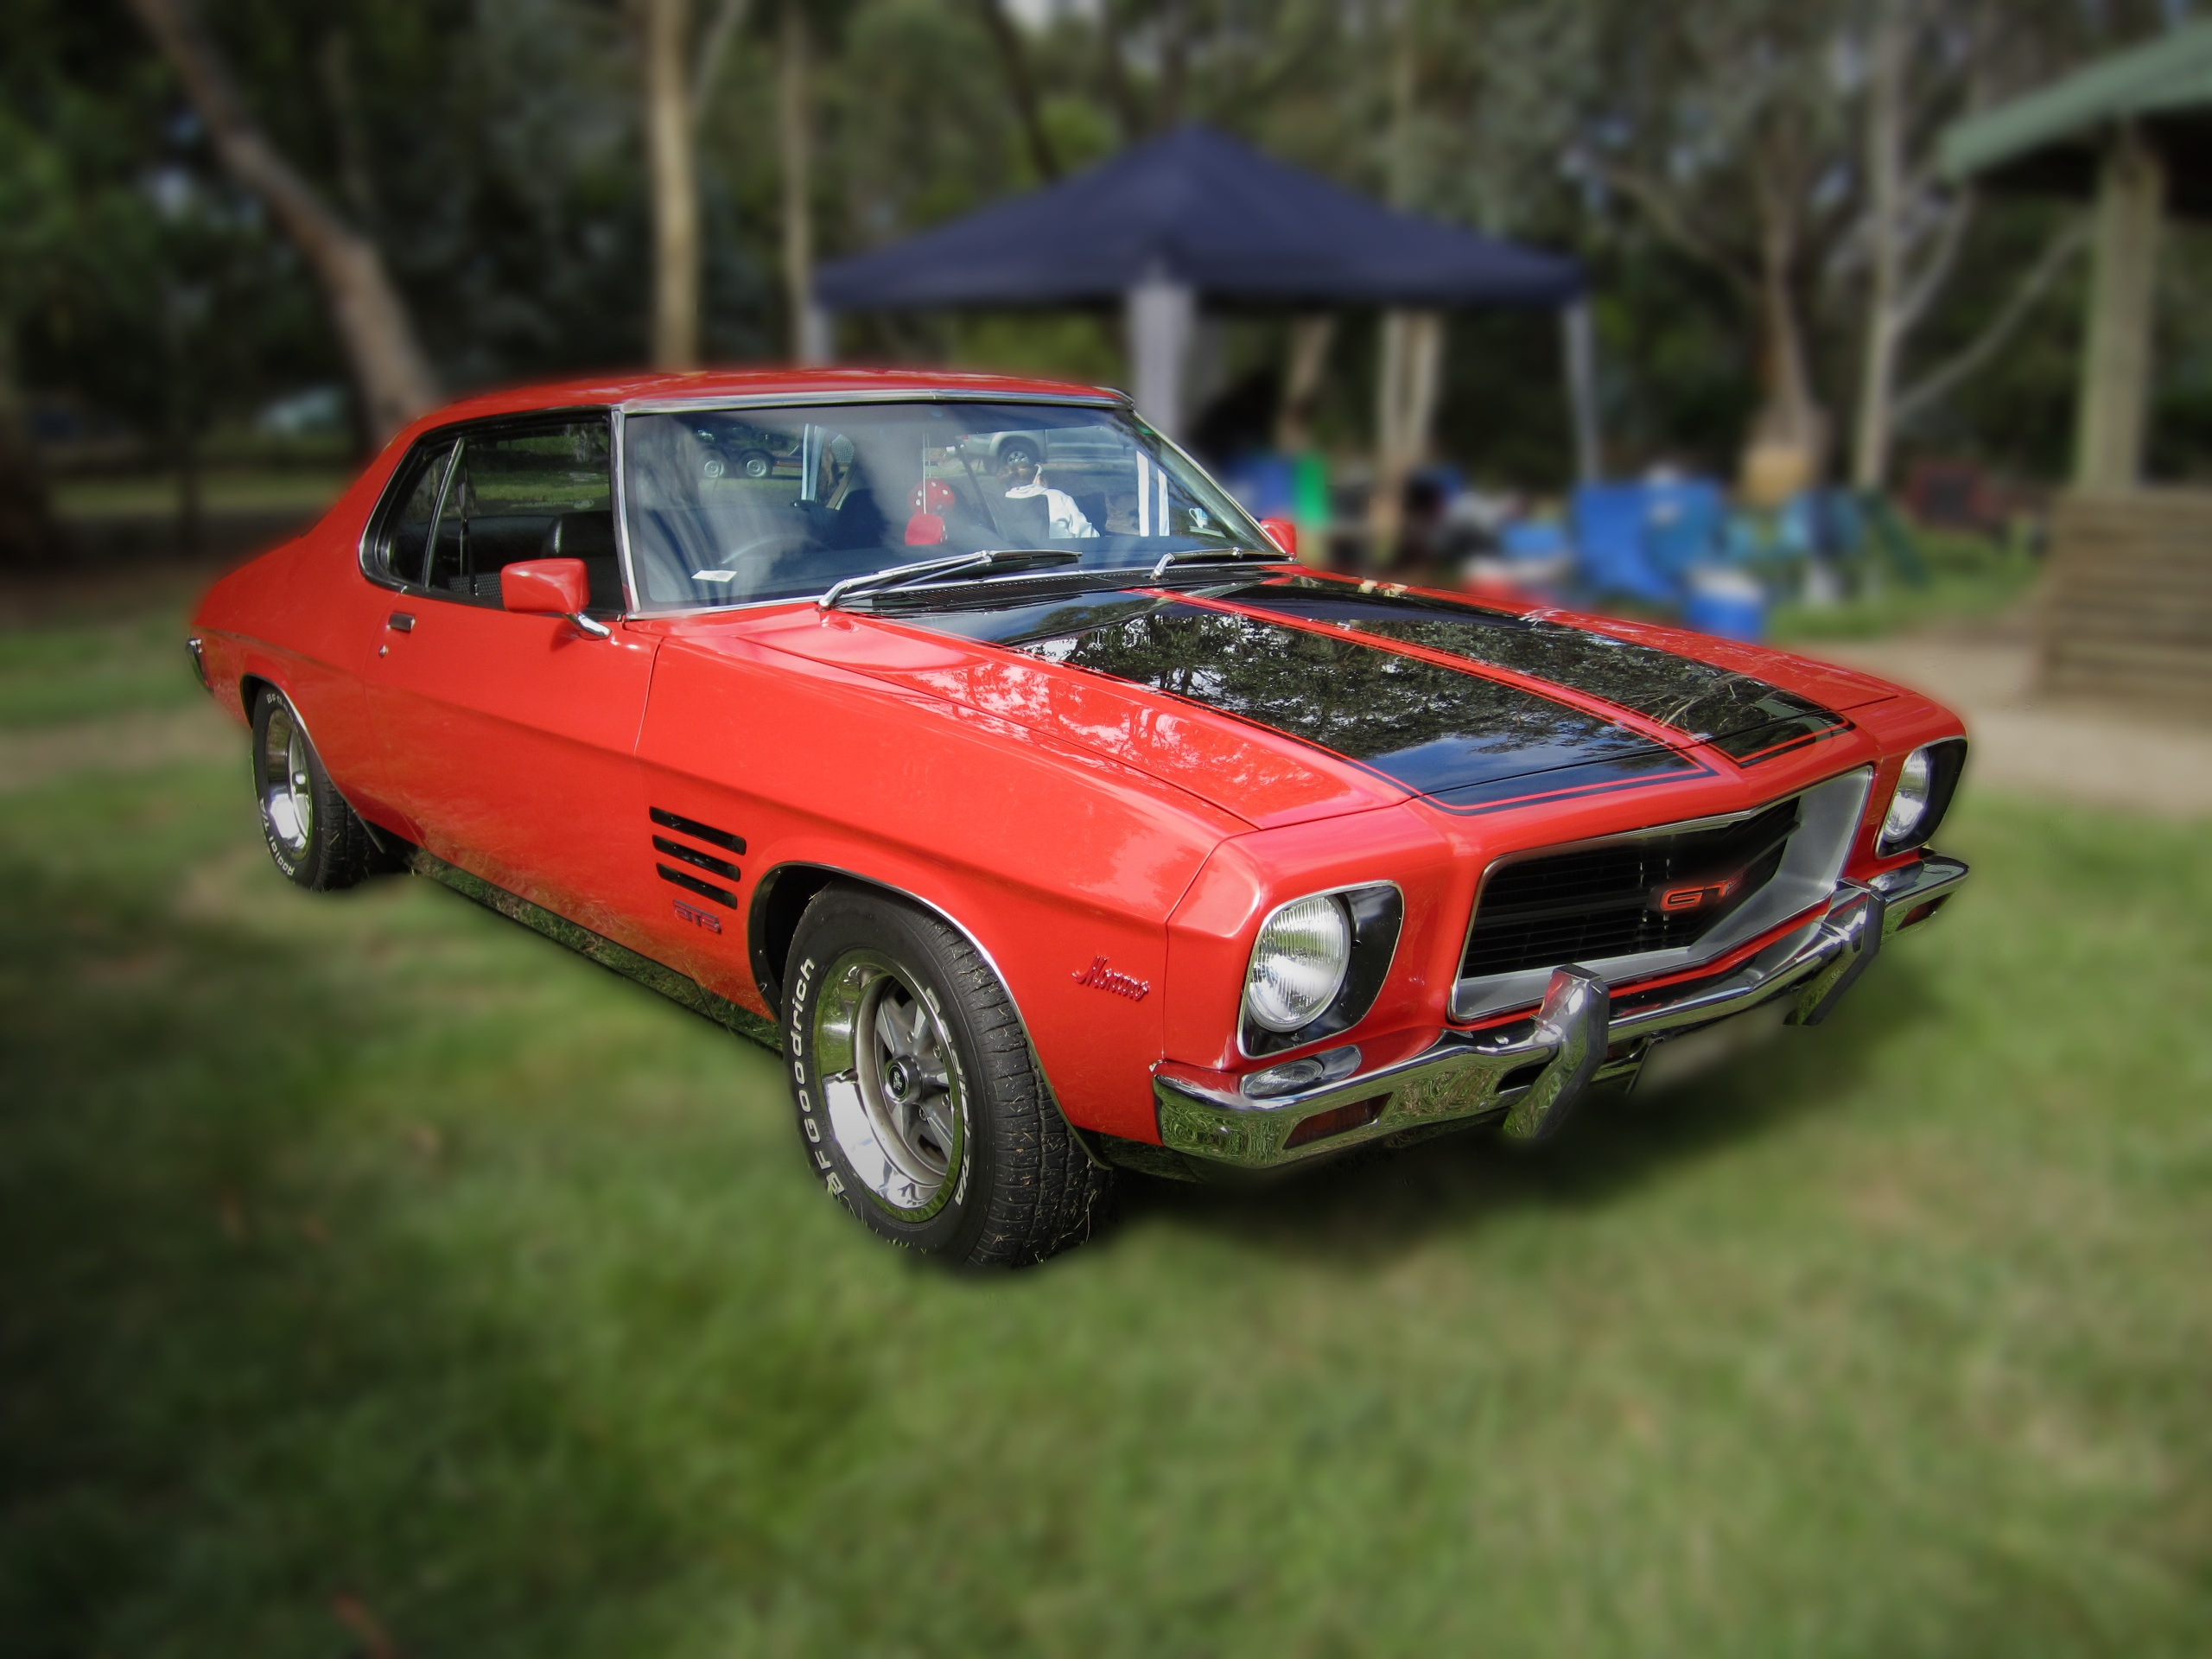 Holden Monaro HQ GTS 350 - Dream Cars of the Past and Present